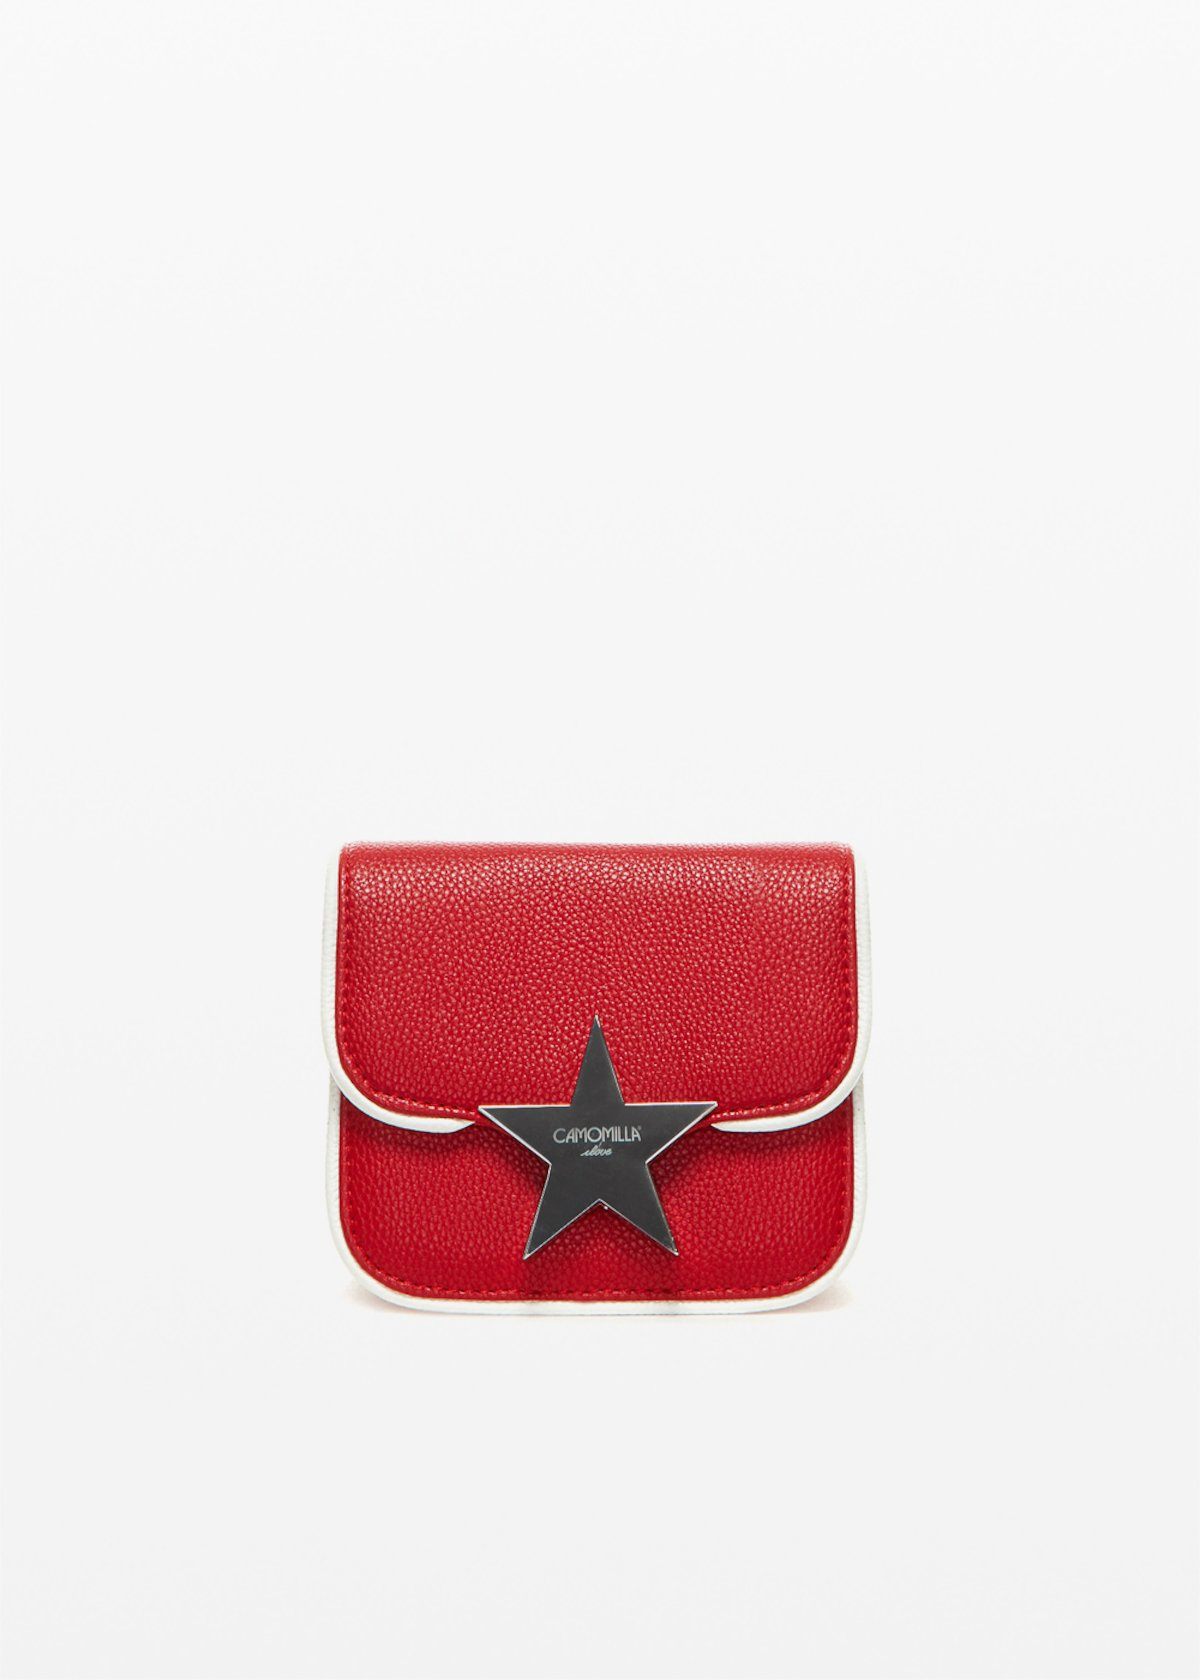 Burpies clutch bag with star clasp - Tulipano / White - Woman - Category image